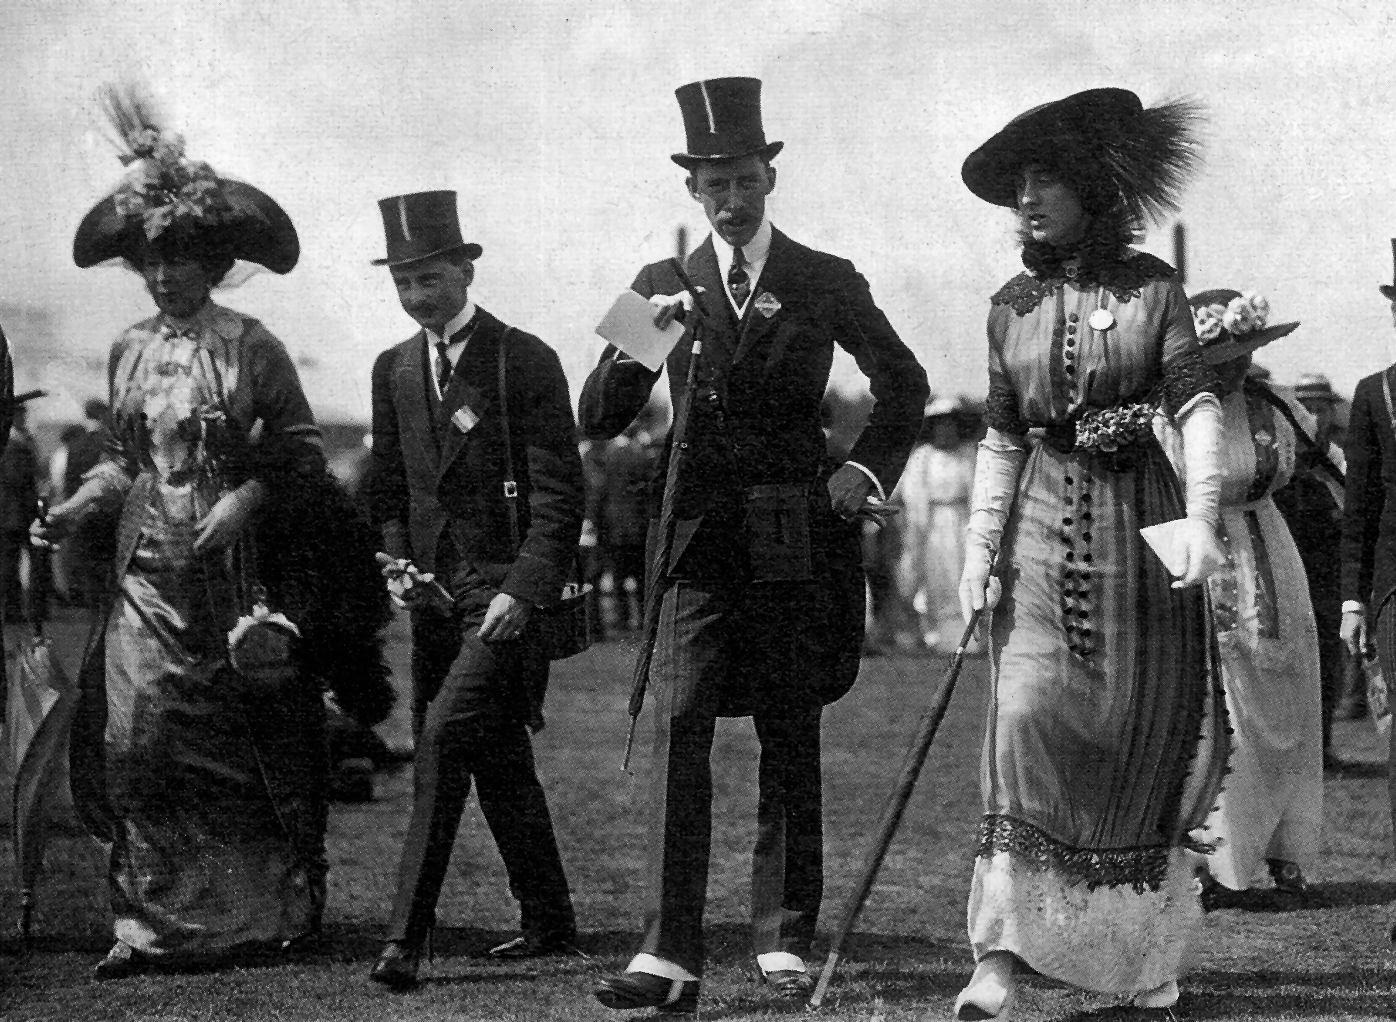 1912 (June) Vita Sackville-West at Ascot cropped